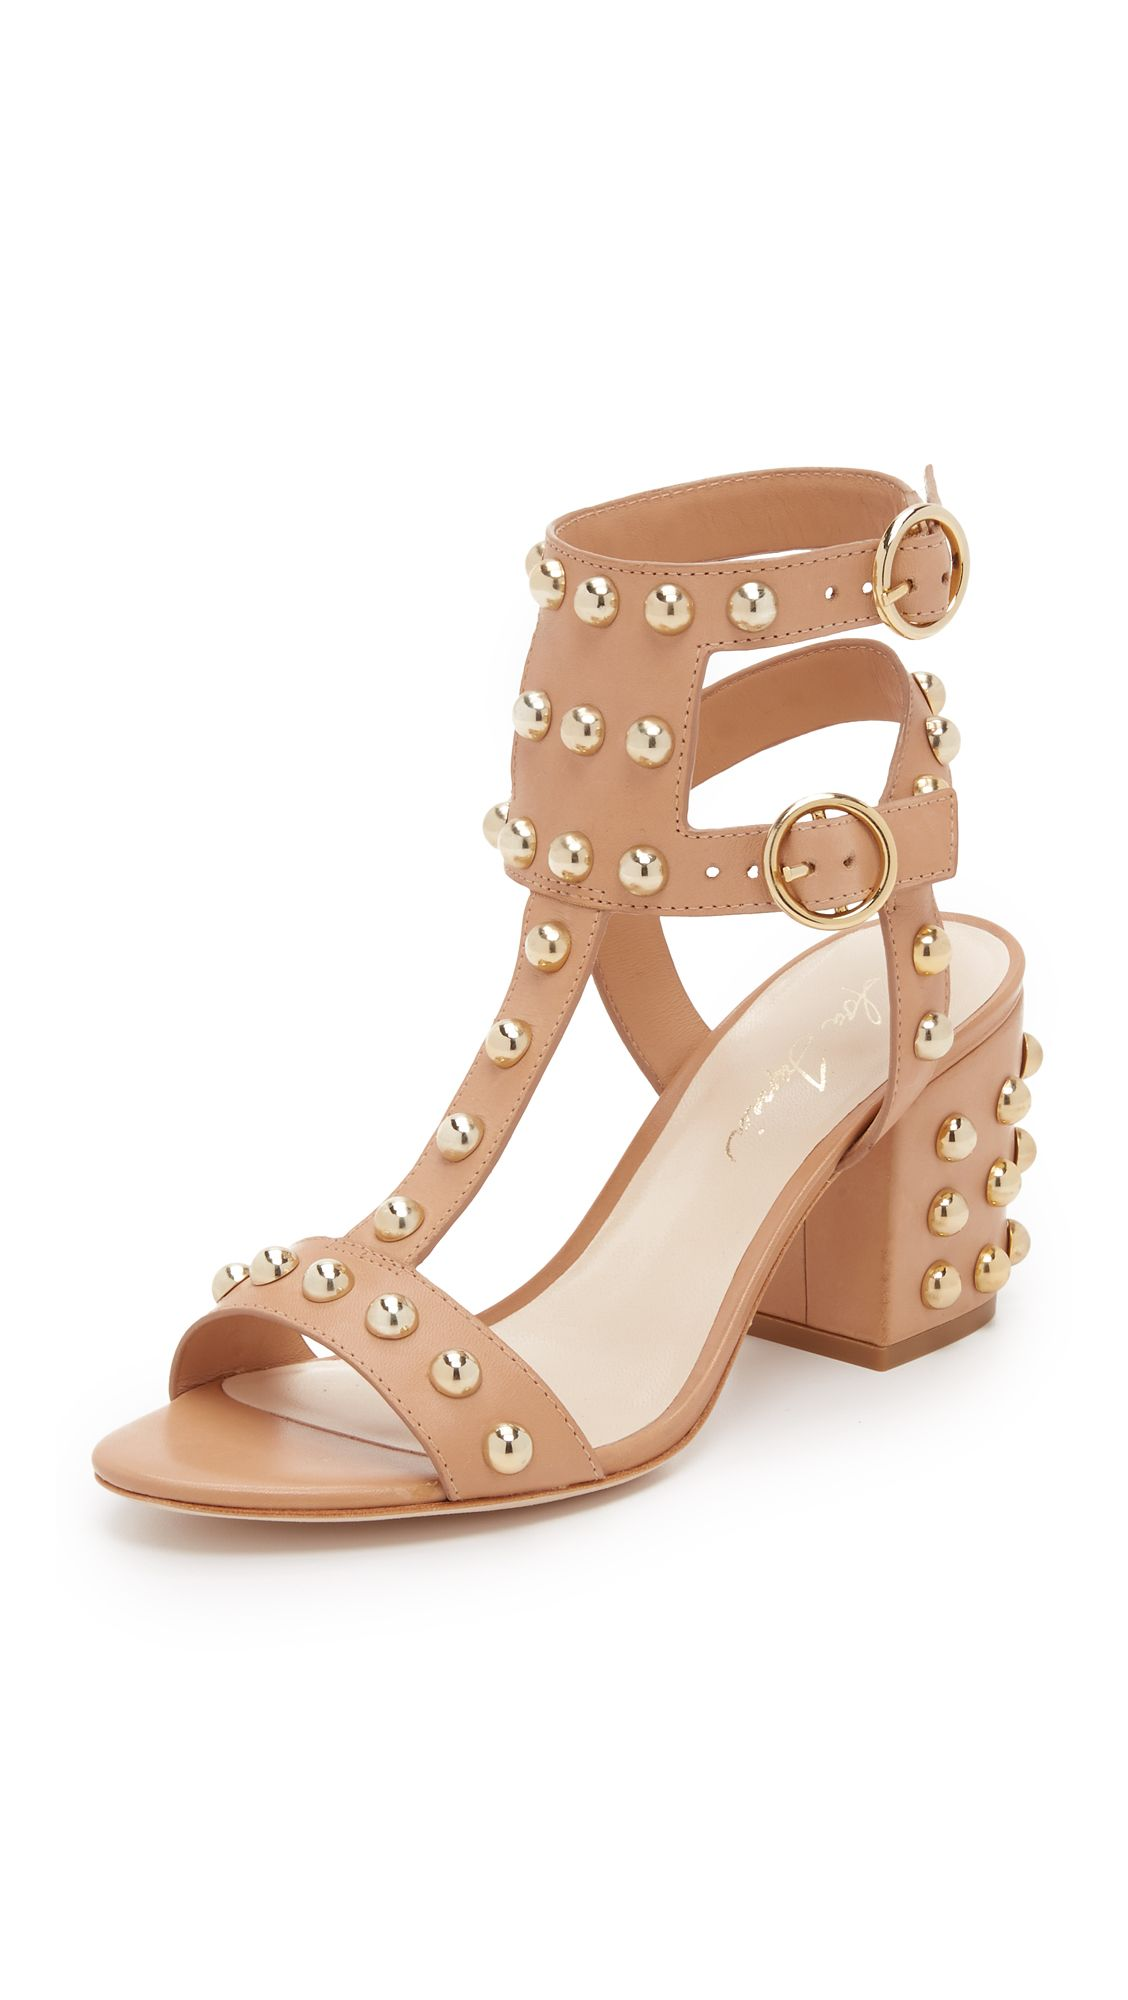 Chaussures - Sandales Isa Tapia 6bVEnQL2